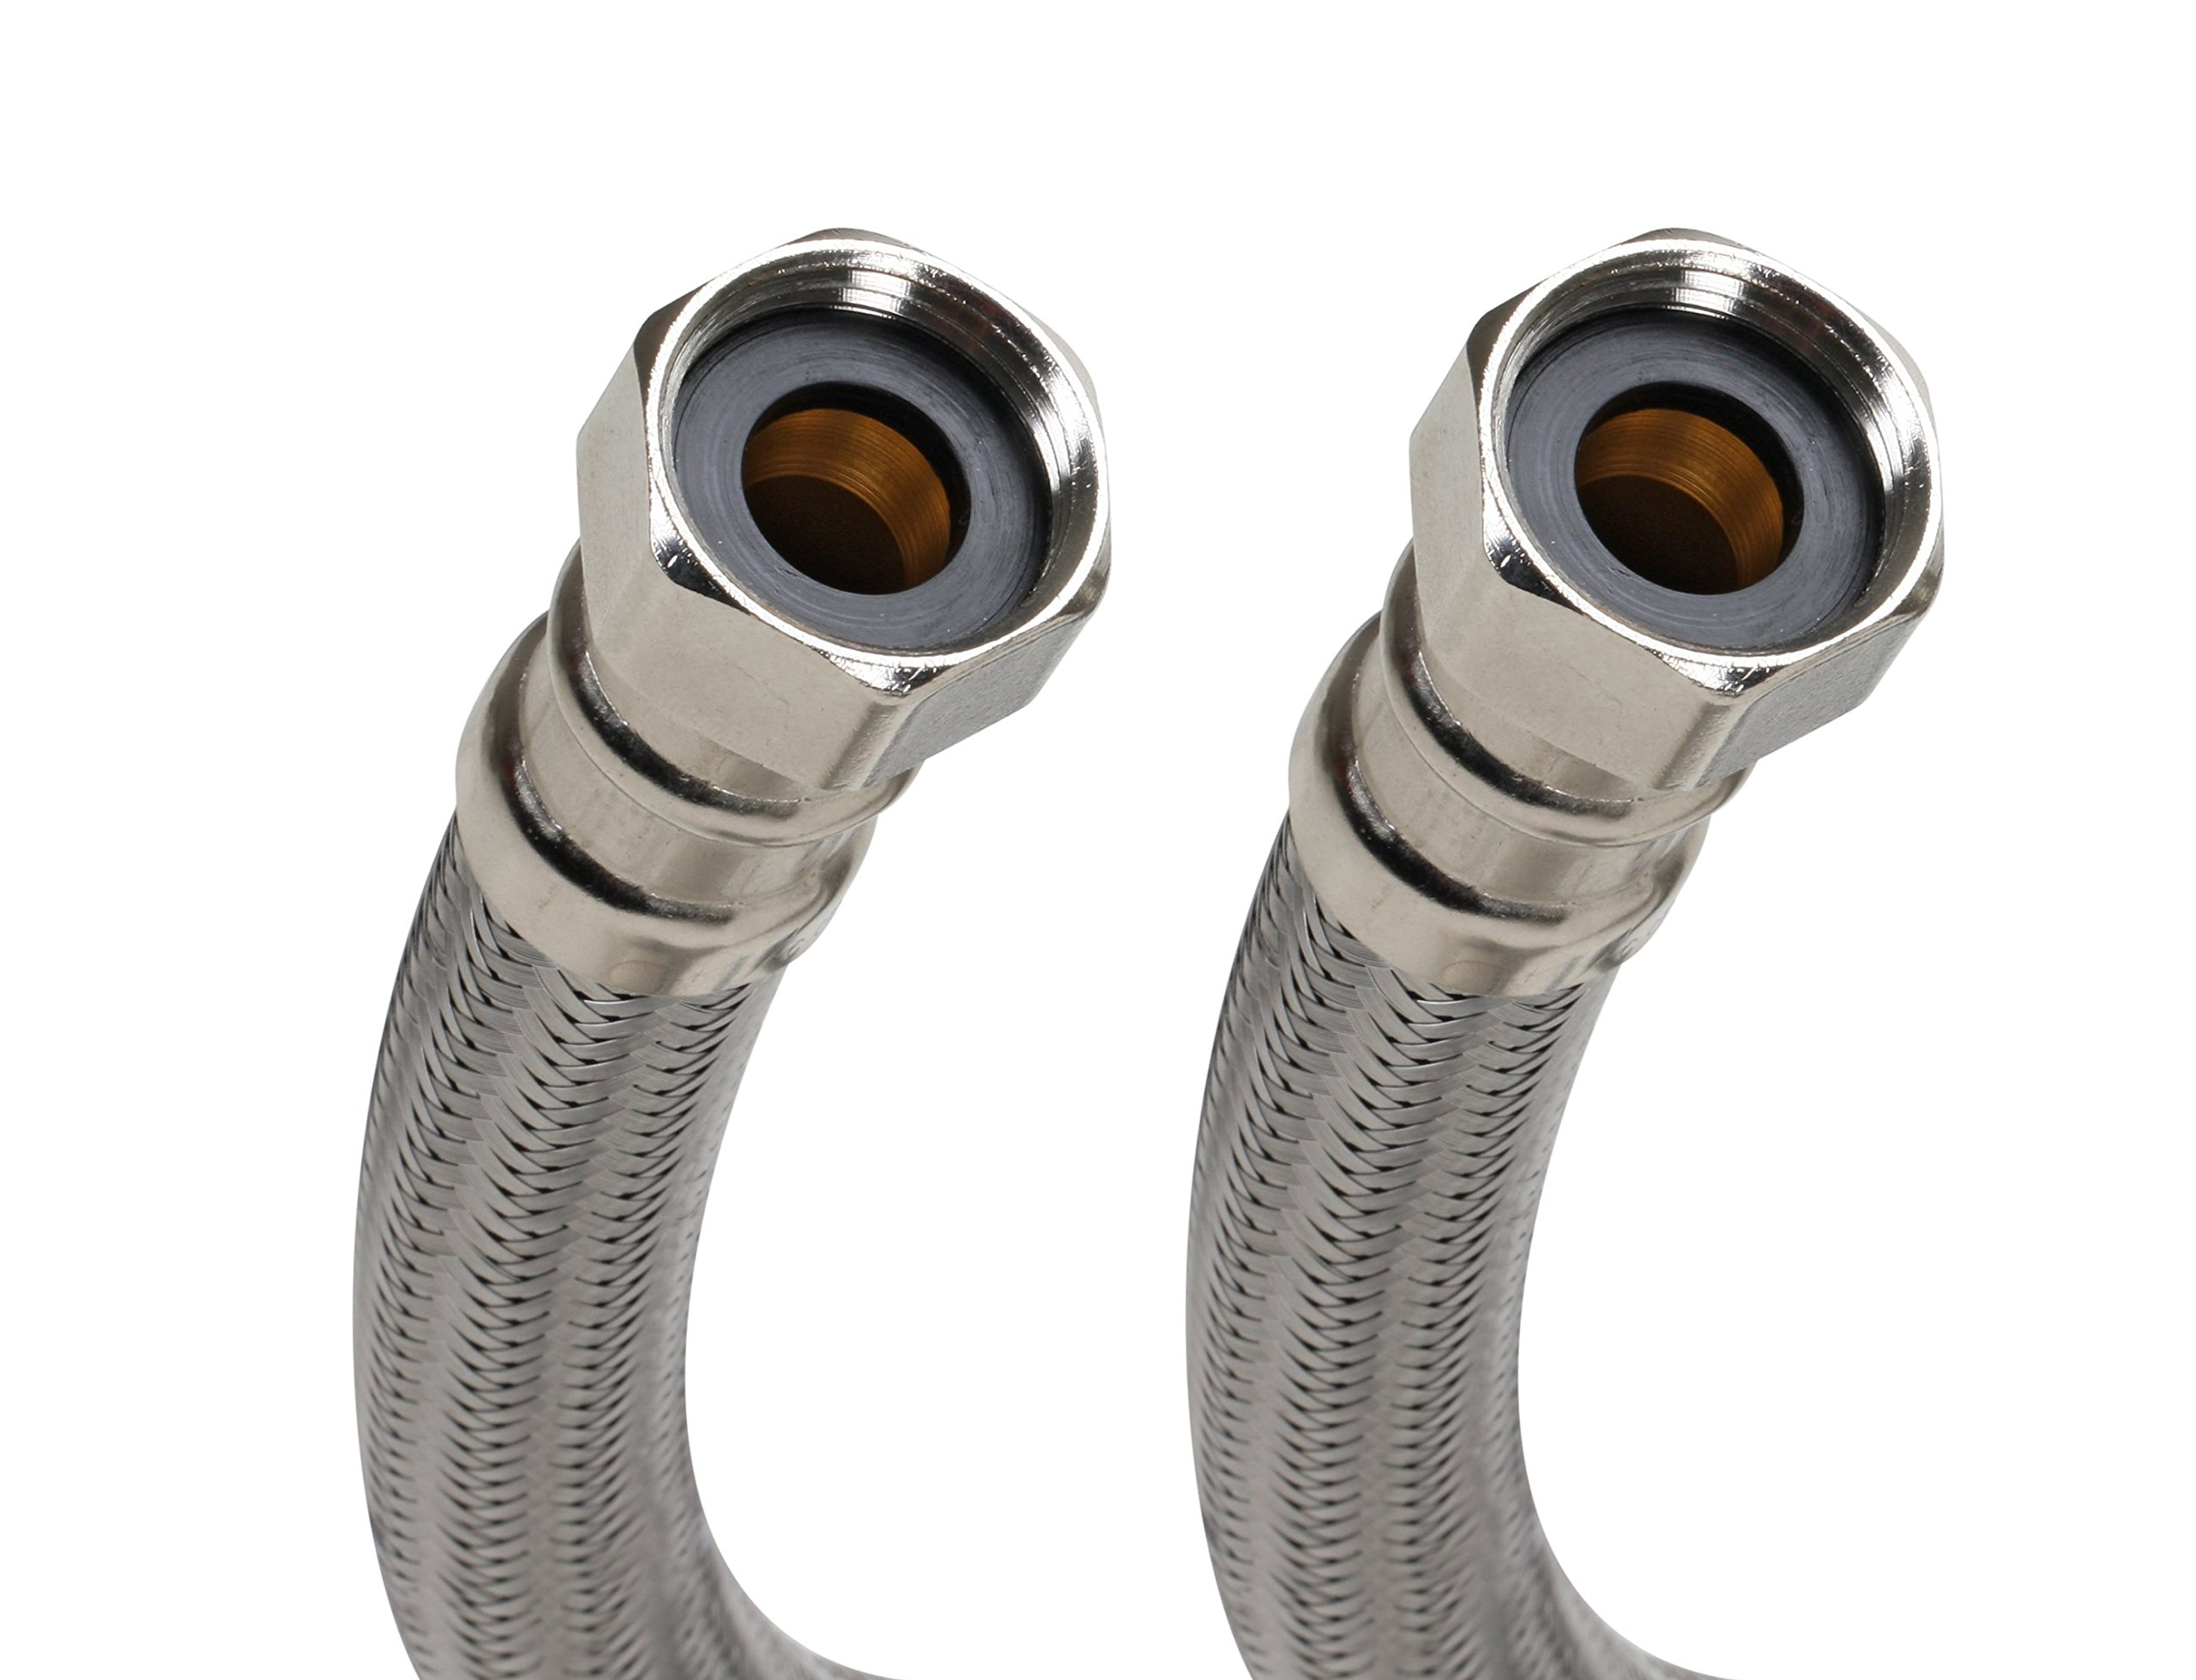 Fluidmaster B1H24 Stainless Steel Water Heater Connectors - 3/4'' Female Iron Pipe x 3/4'' Female Iron Pipe, 24'' Length